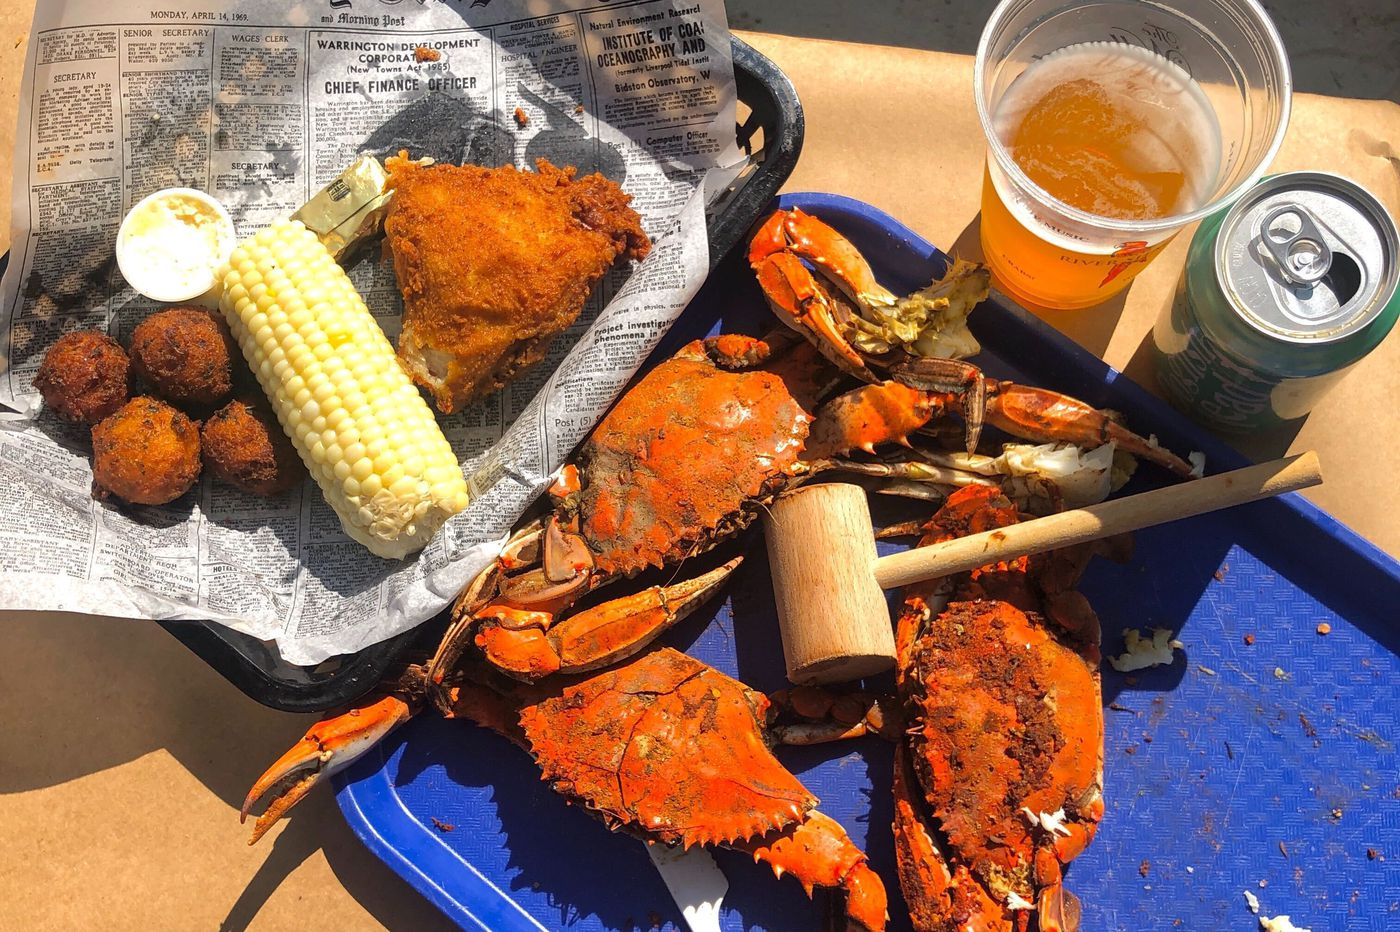 Take a road trip to Maryland for steamed crabs and fried chicken